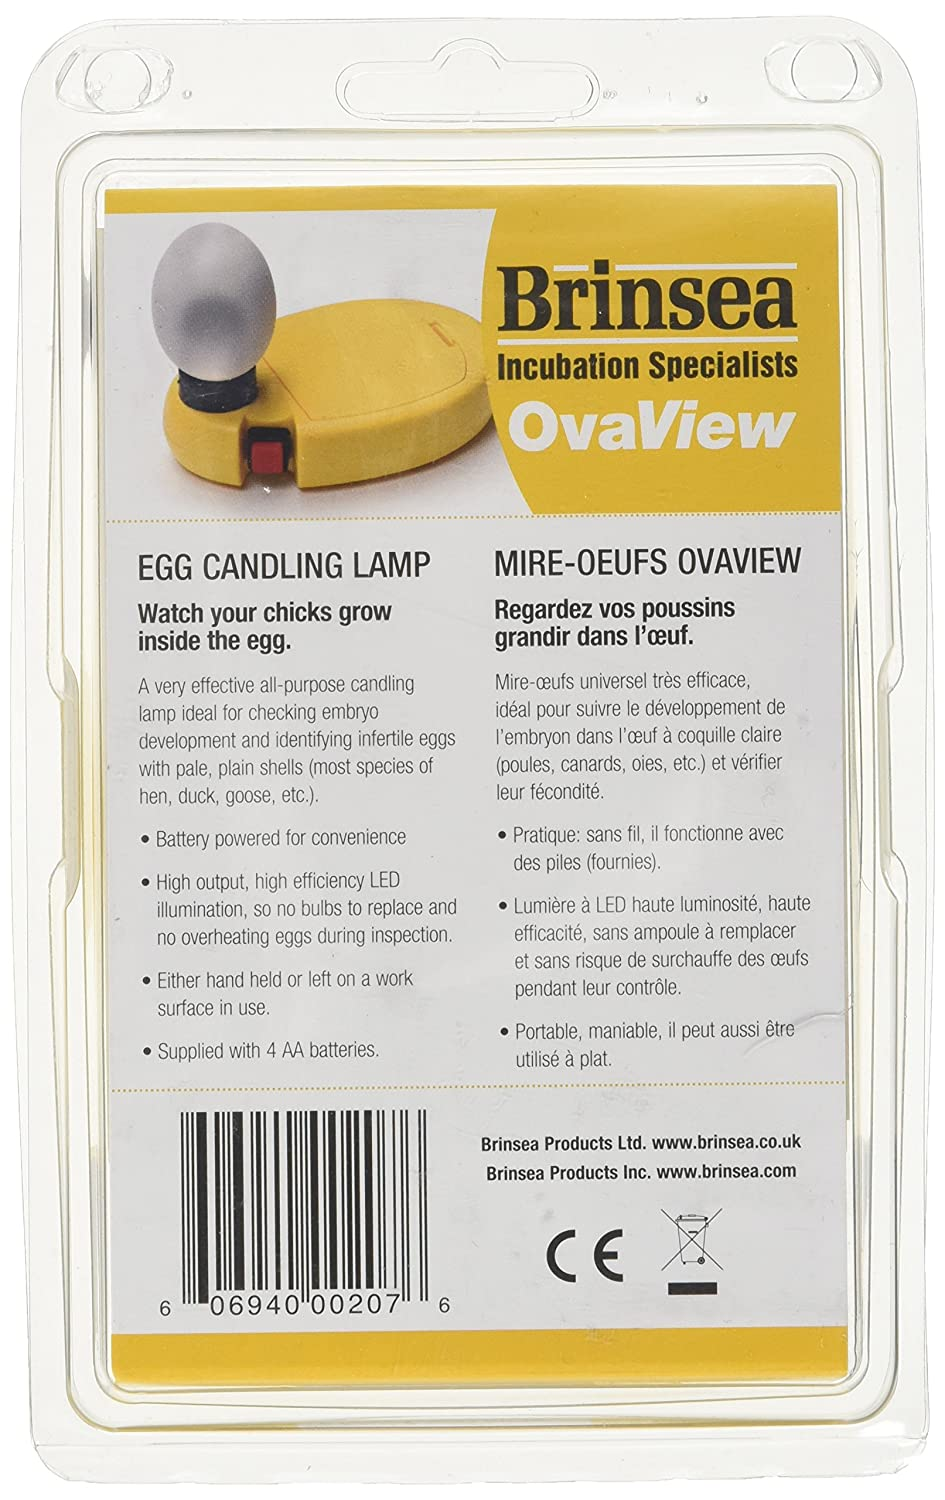 Amazon.com: Brinsea Products Candling Lamp For Monitoring The Development  Of The Embryo Within The Egg: Pet Supplies